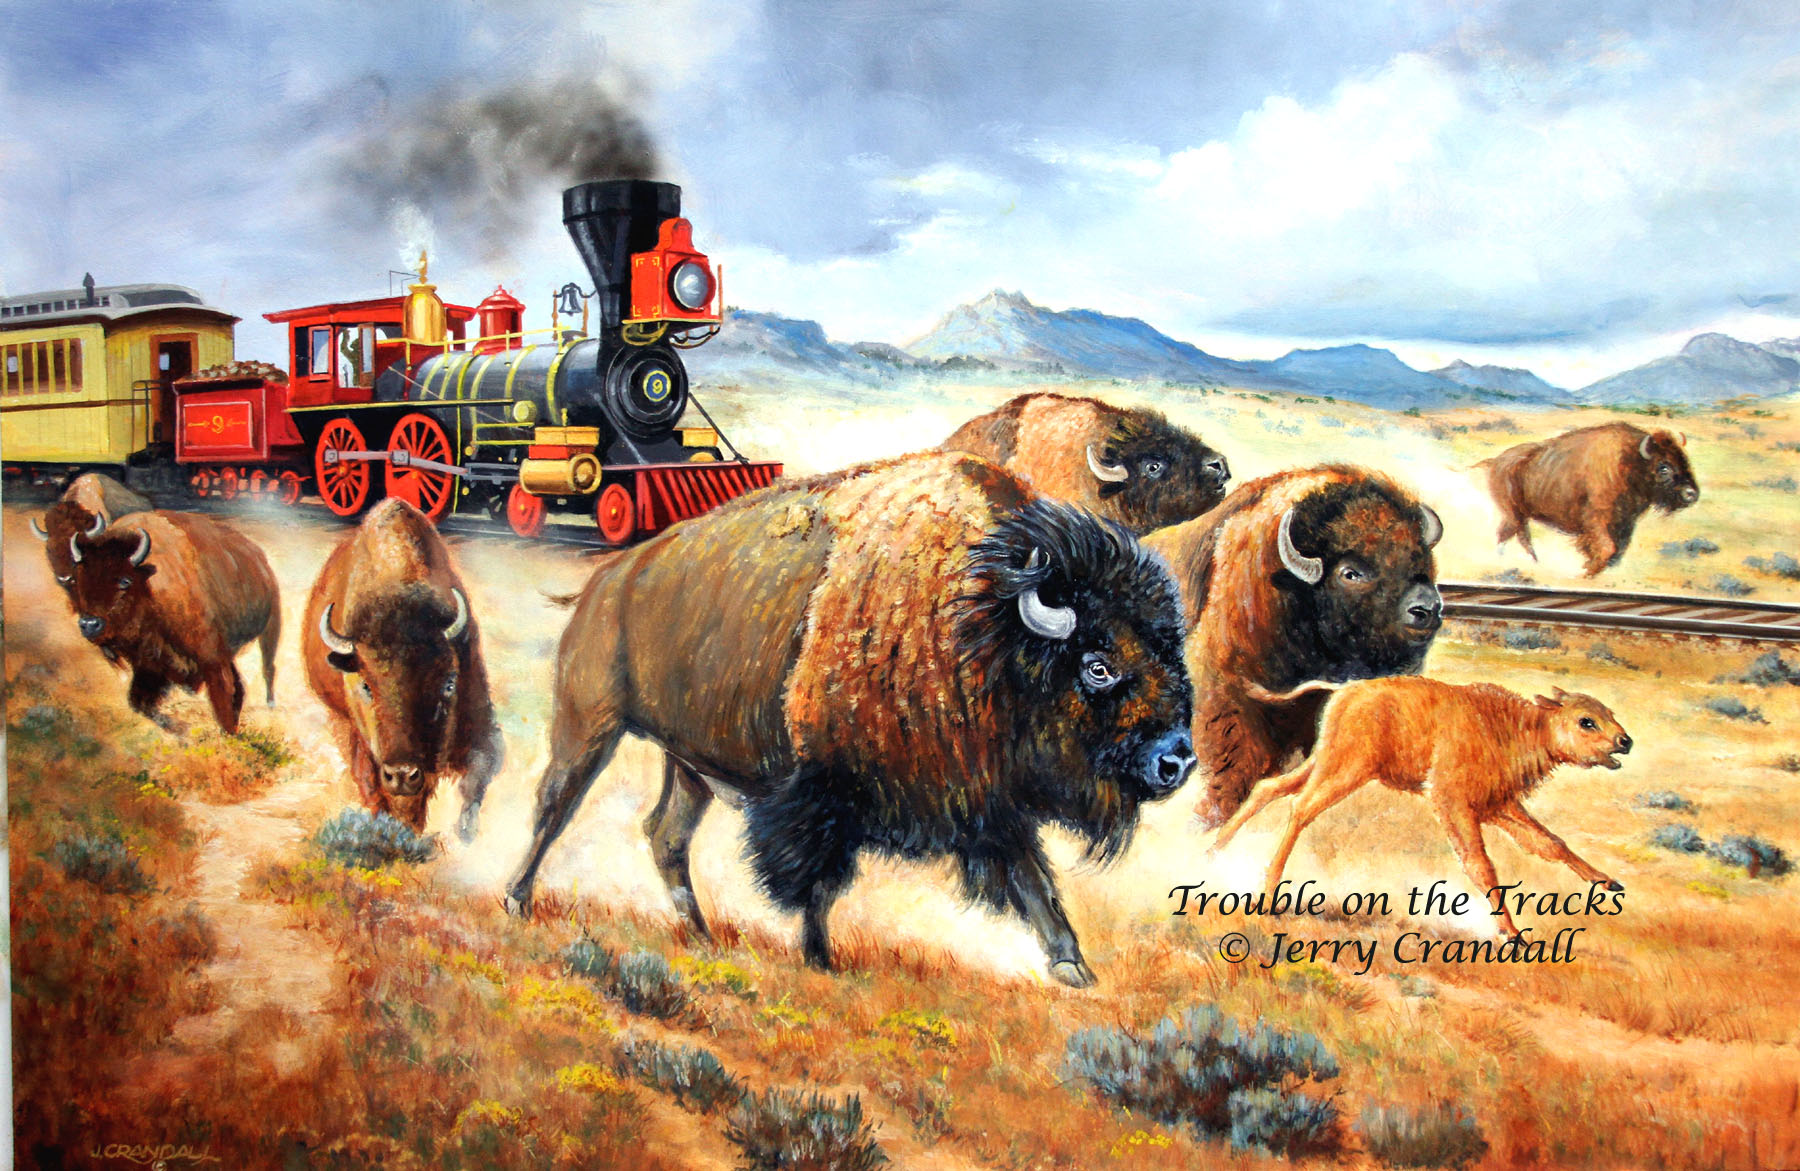 Trouble on the Tracks ~ Jerry Crandall